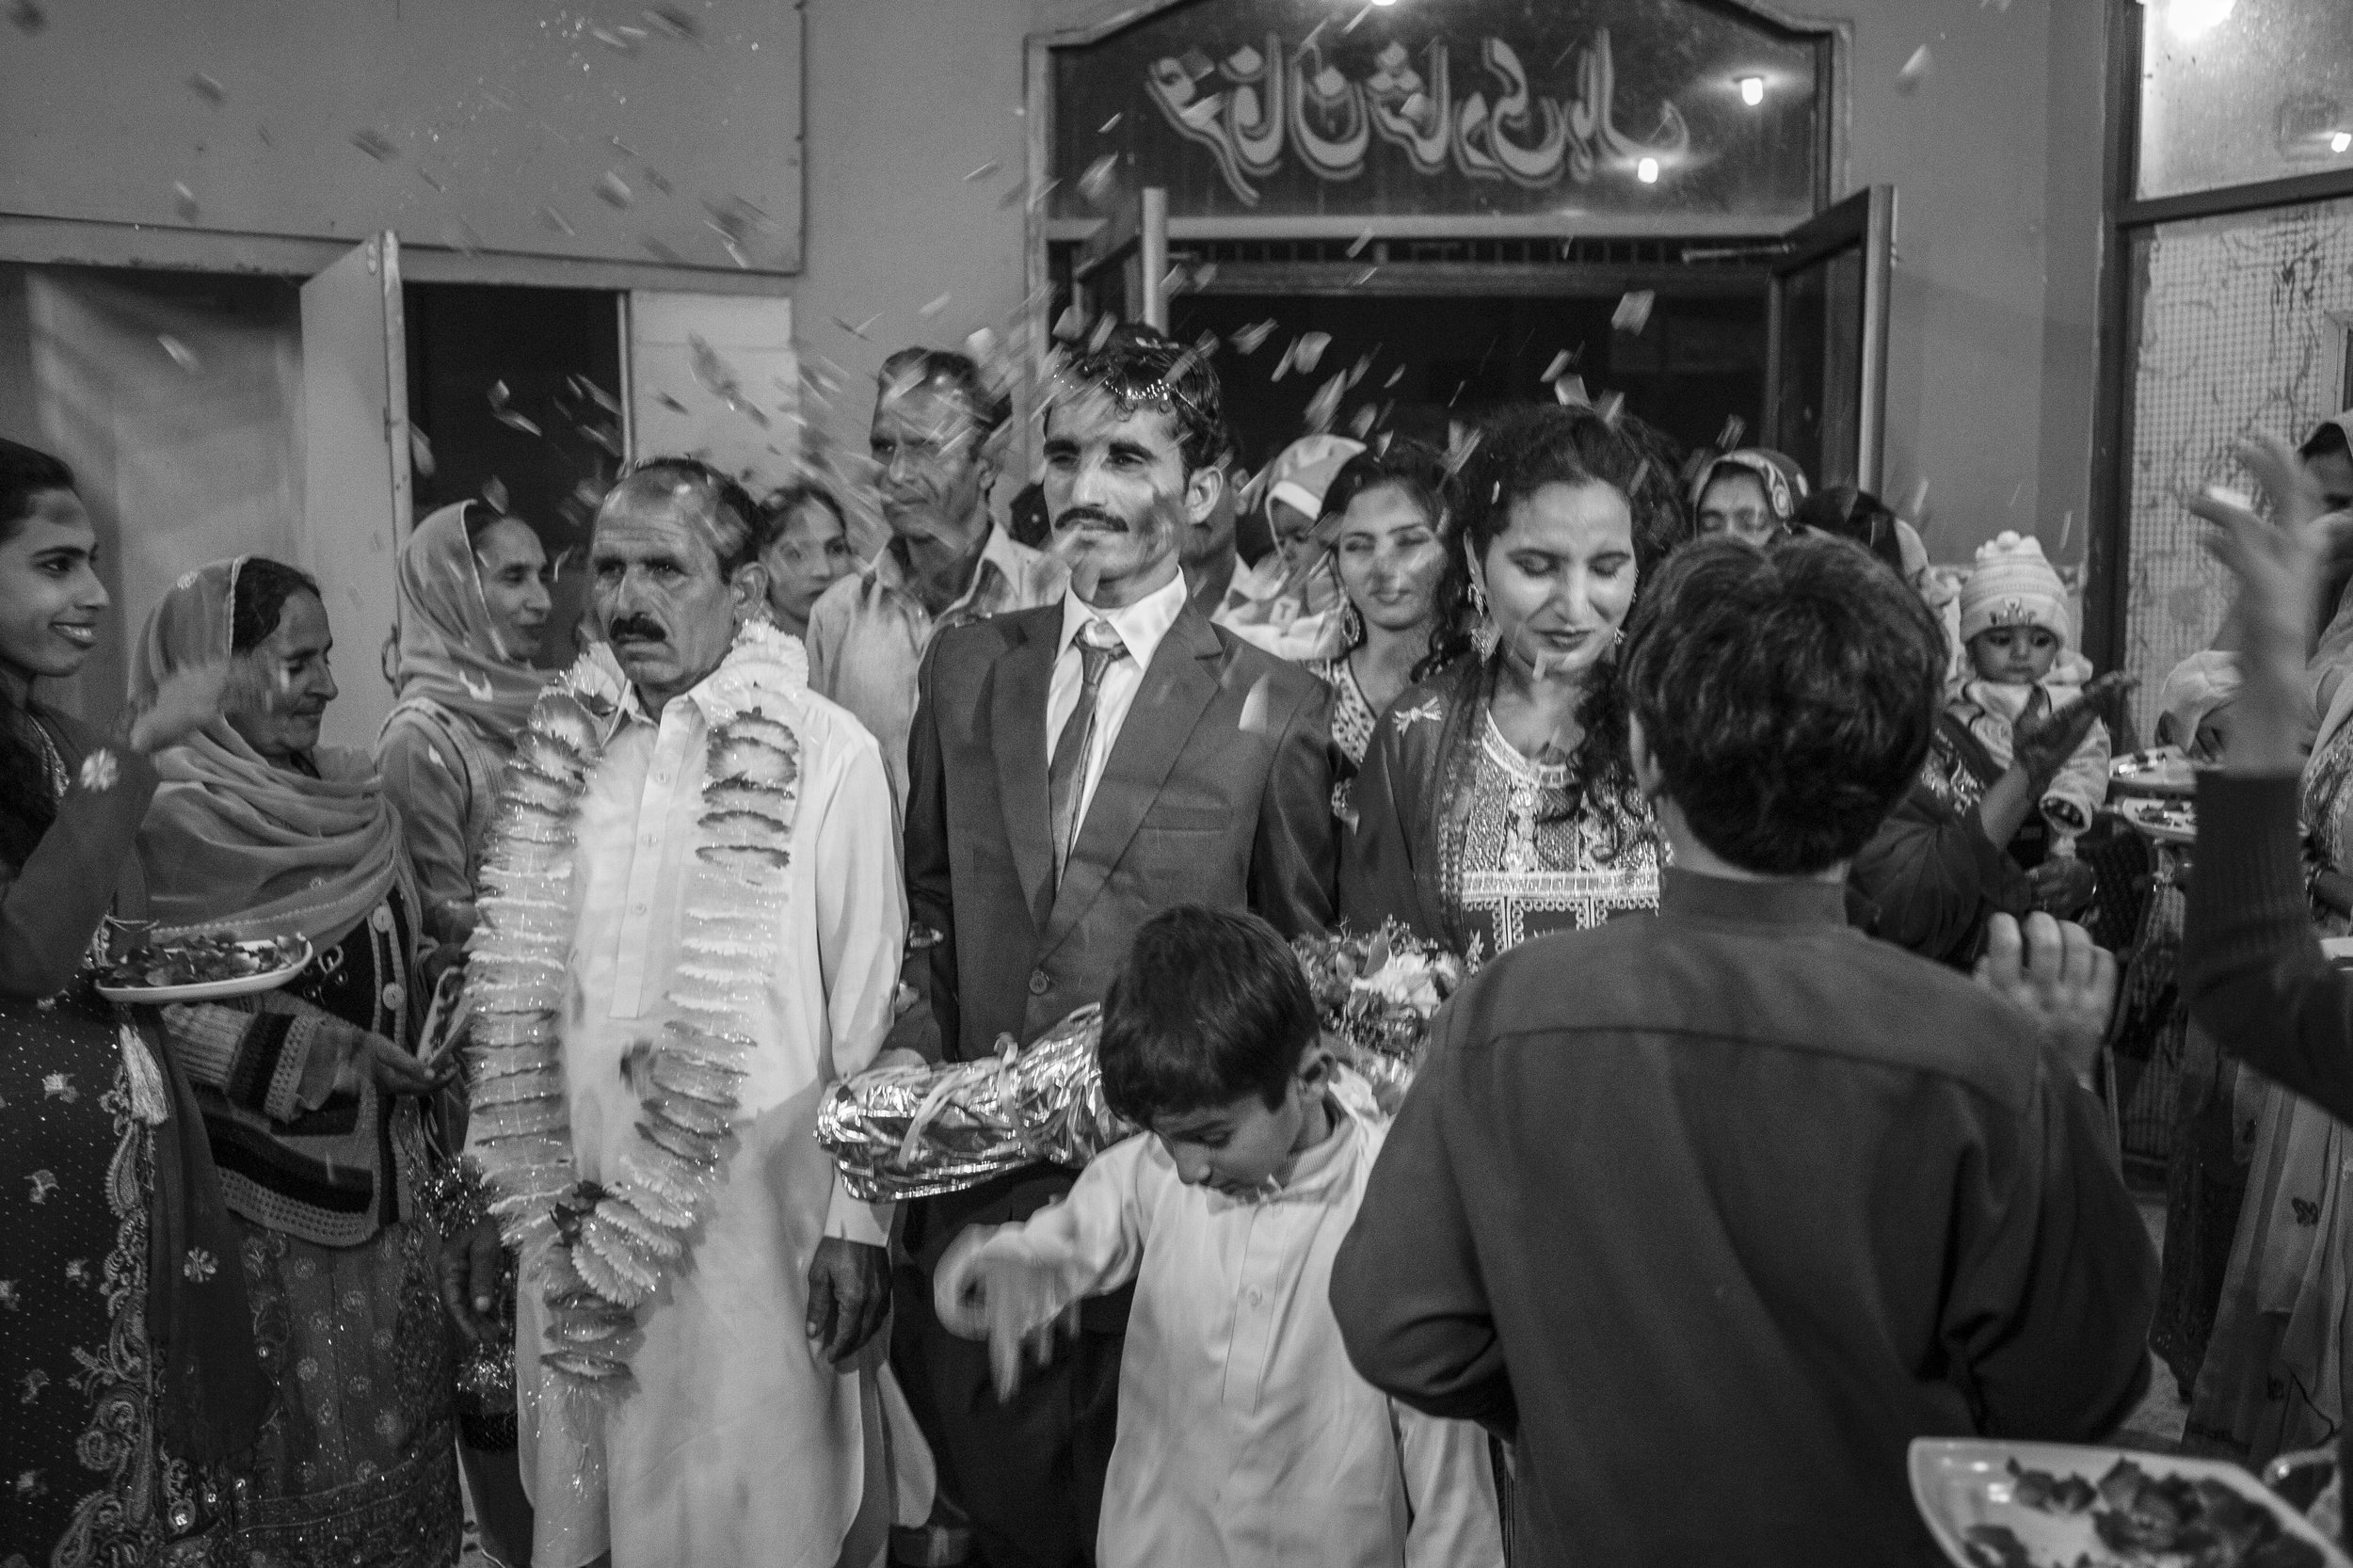 Arshad Ali (Left) arrives at his wedding ceremony along with his family to marry Sarwari Bibi, an acid attack survivor, on Jan. 7, 2016 in Lahore, Pakistan.